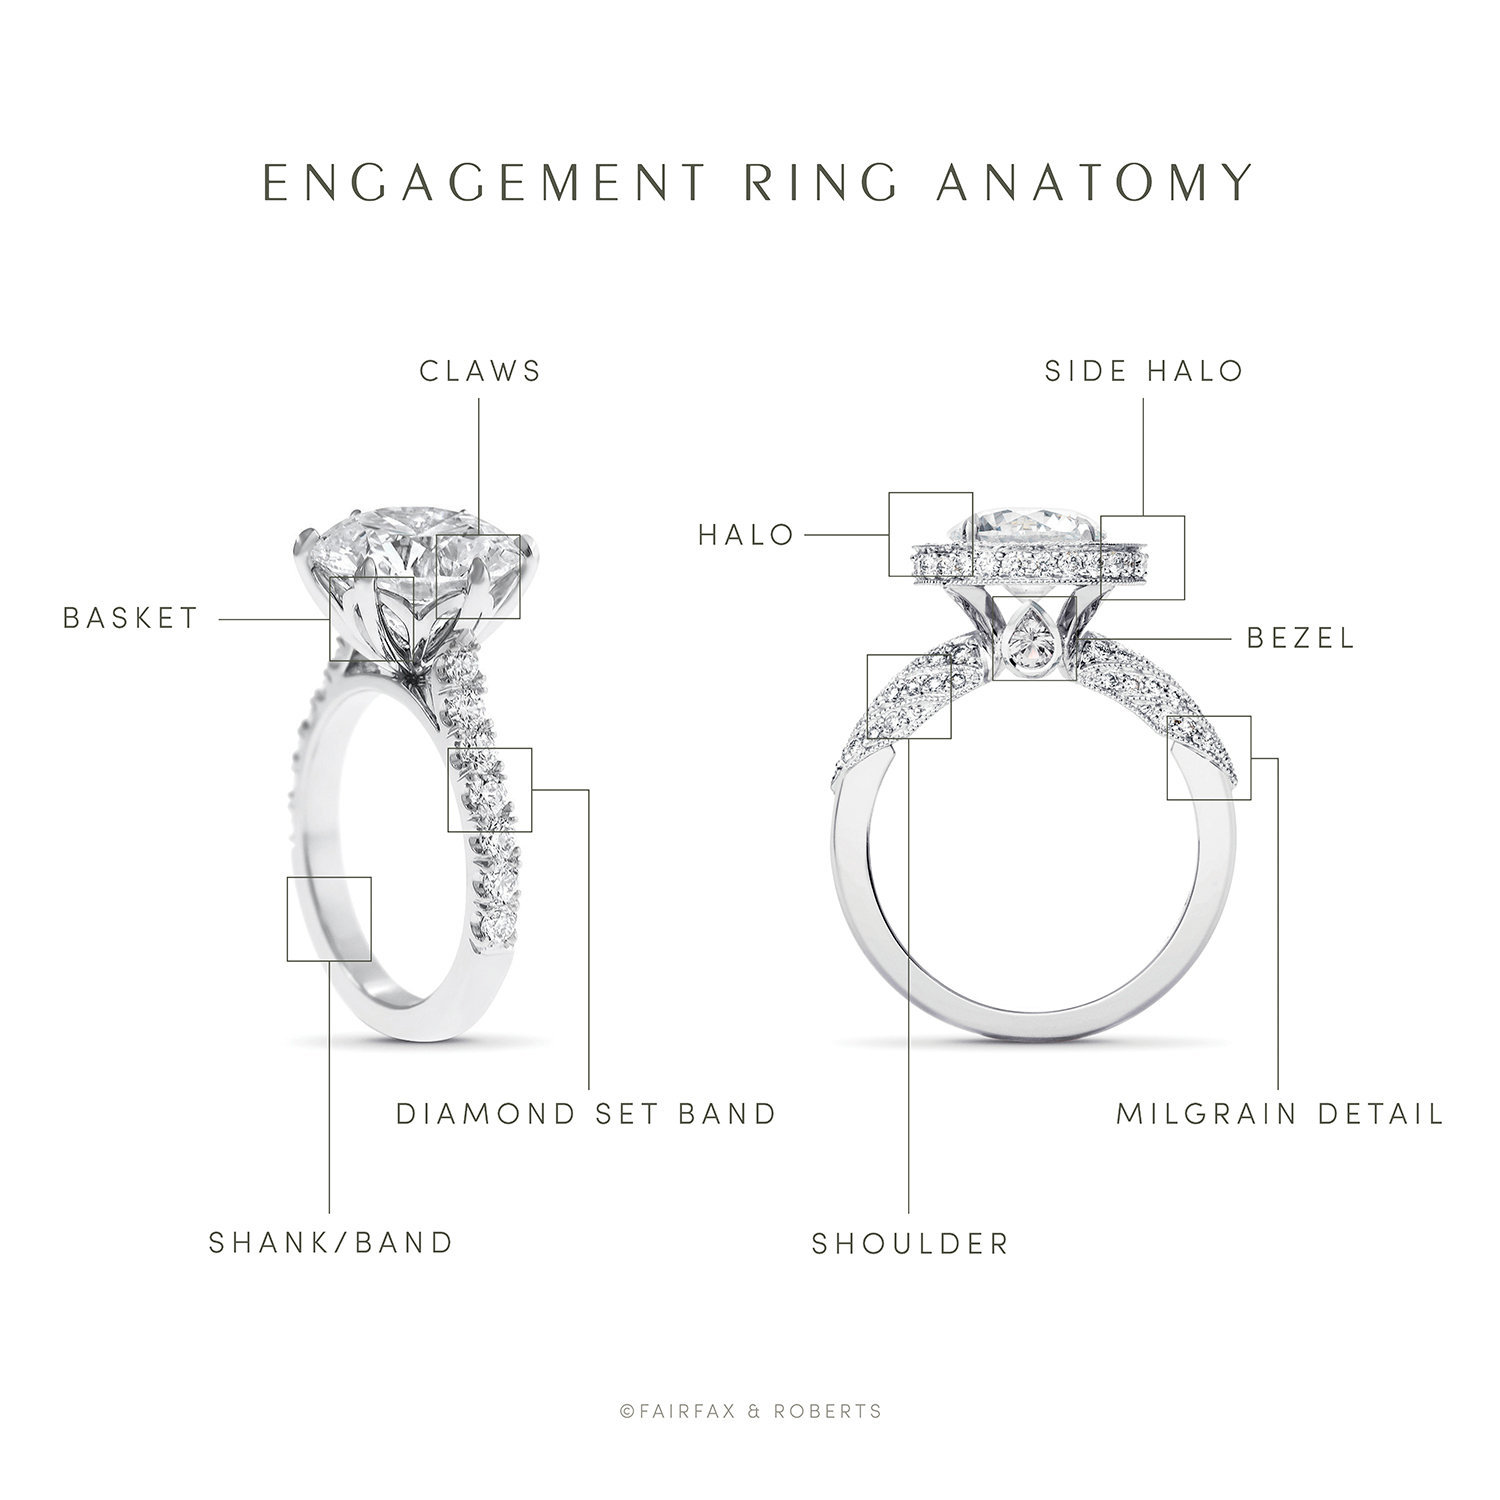 ring anatomy engagement ring band shank basket claws setting shoulder engagement ring guide